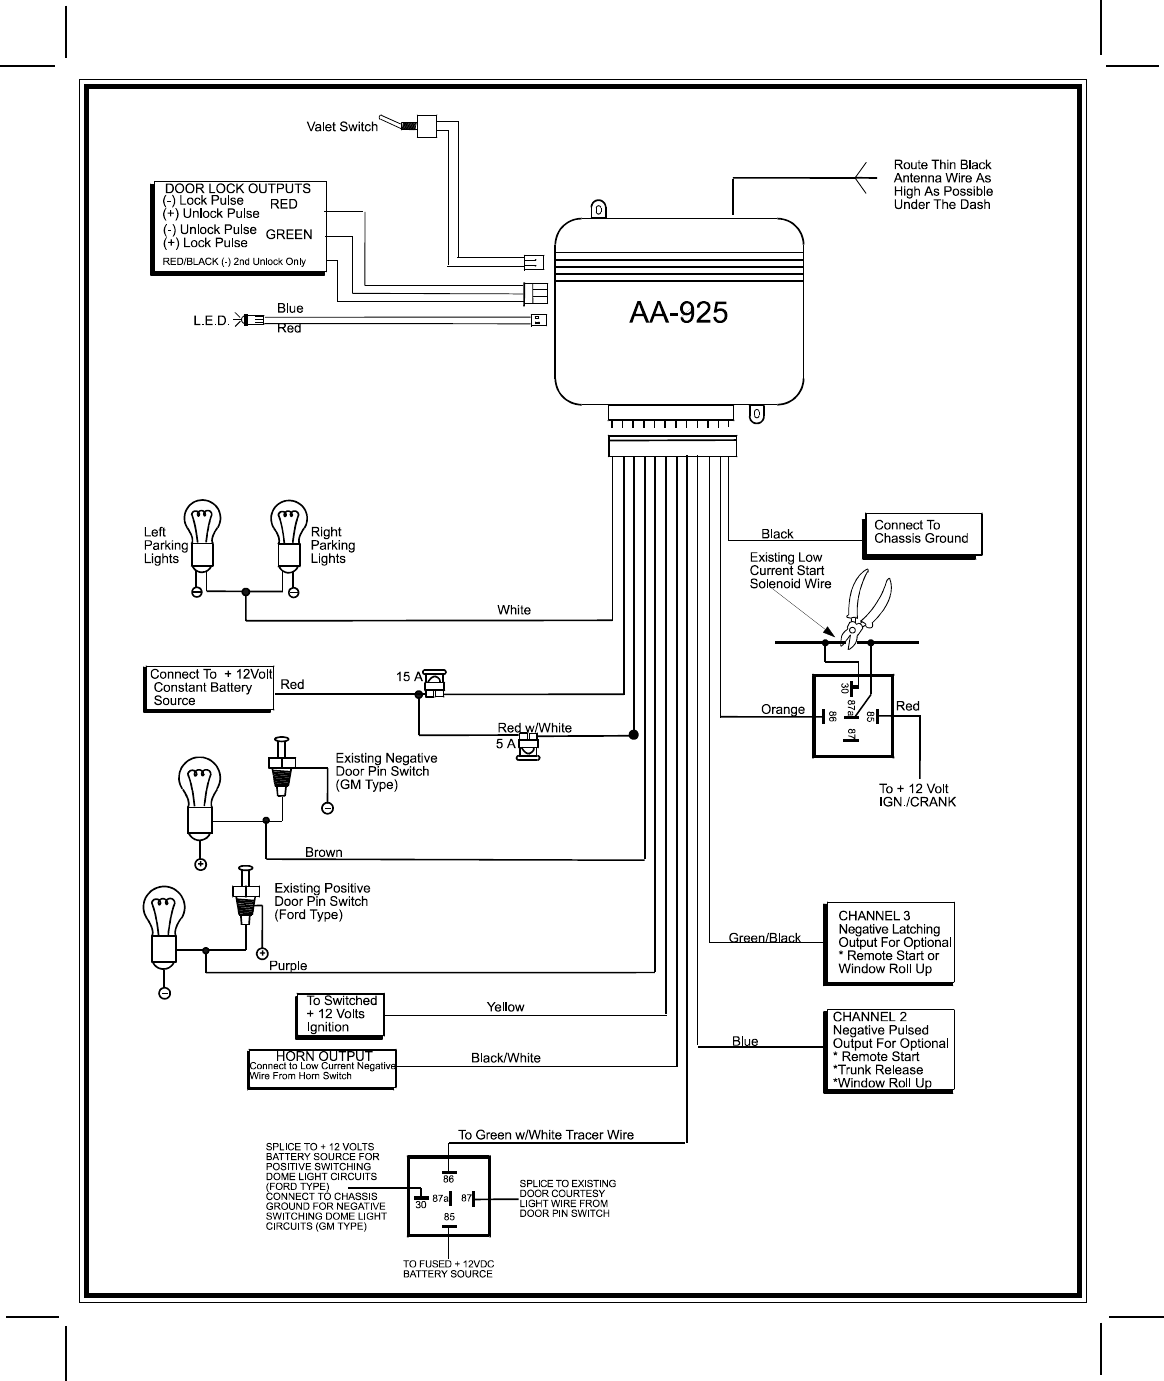 728e5939 5a52 46a4 ba14 2e72baef2843 bg8 page 8 of audiovox automobile alarm aa925 user guide k9 car alarm wiring diagram at gsmportal.co